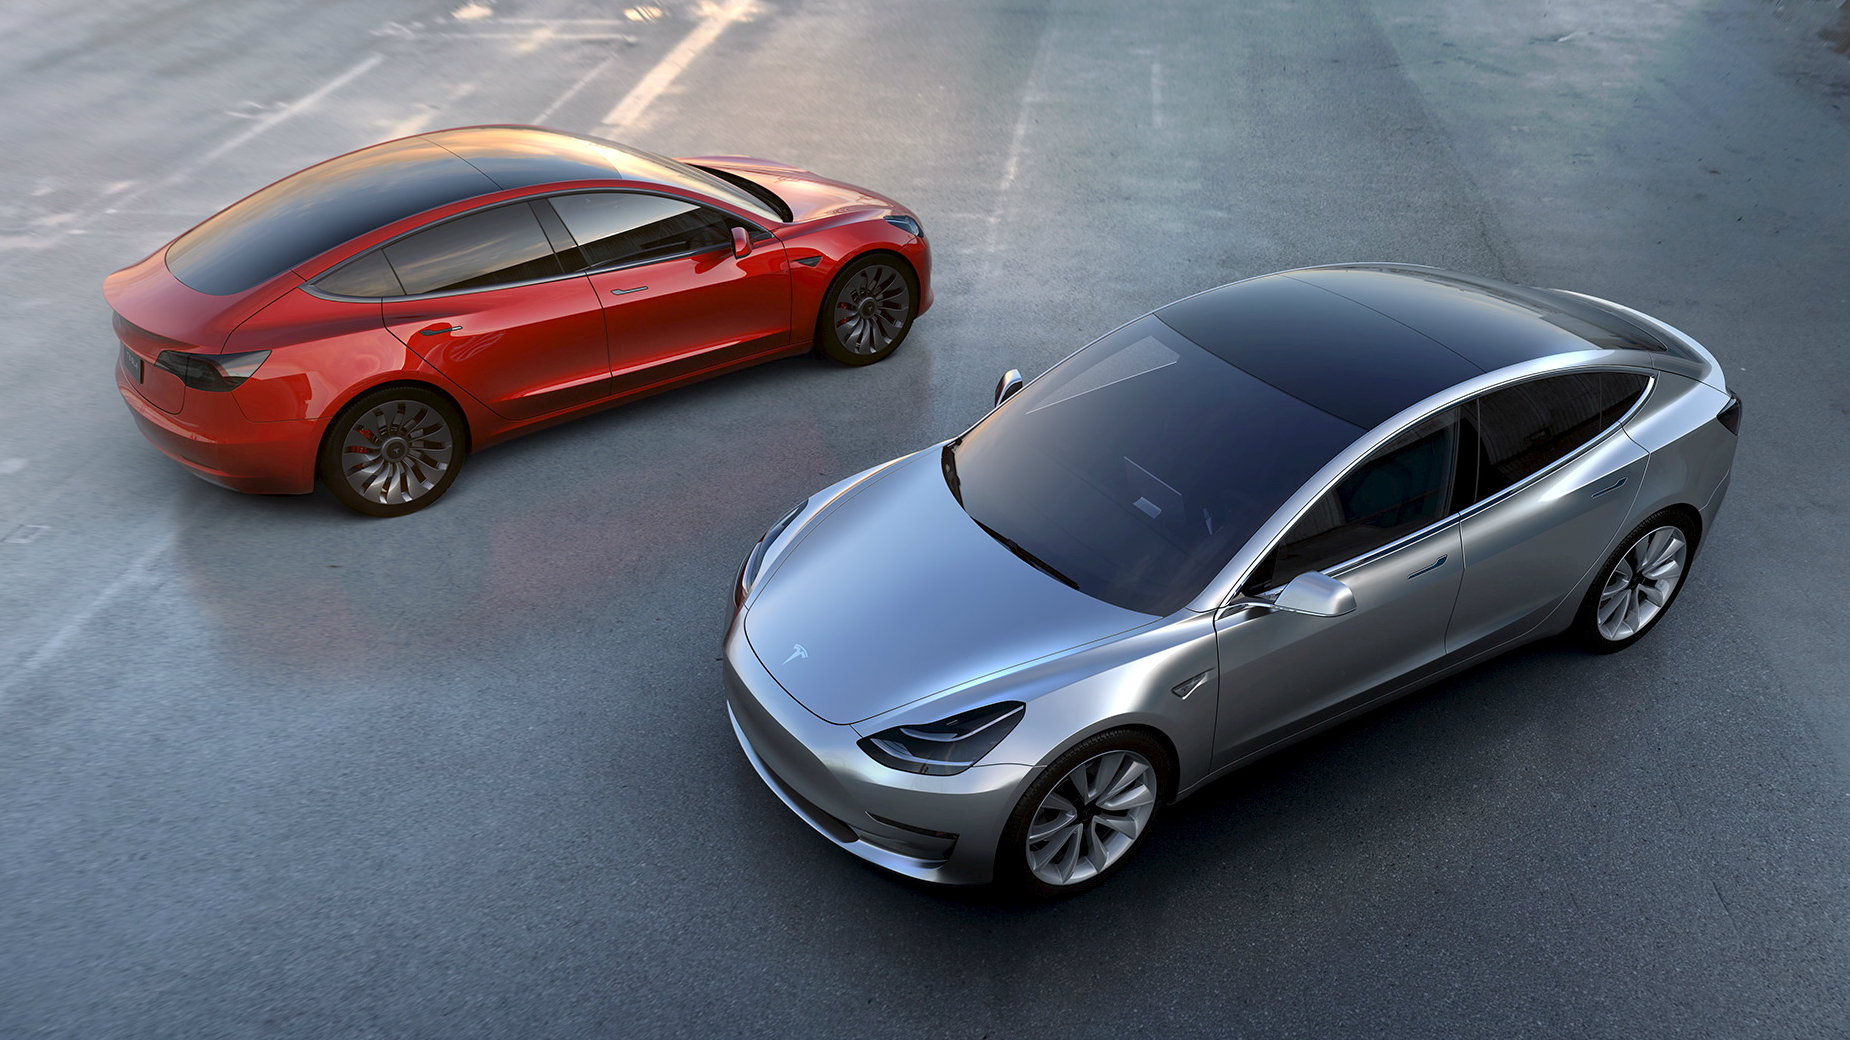 Tesla Motors' mass-market Model 3 electric cars are seen in this handout picture from Tesla Motors on March 31, 2016. Tesla Motors/Handout via Reuters/File Photo ATTENTION EDITORS - THIS IMAGE WAS PROVIDED BY A THIRD PARTY. EDITORIAL USE ONLY.